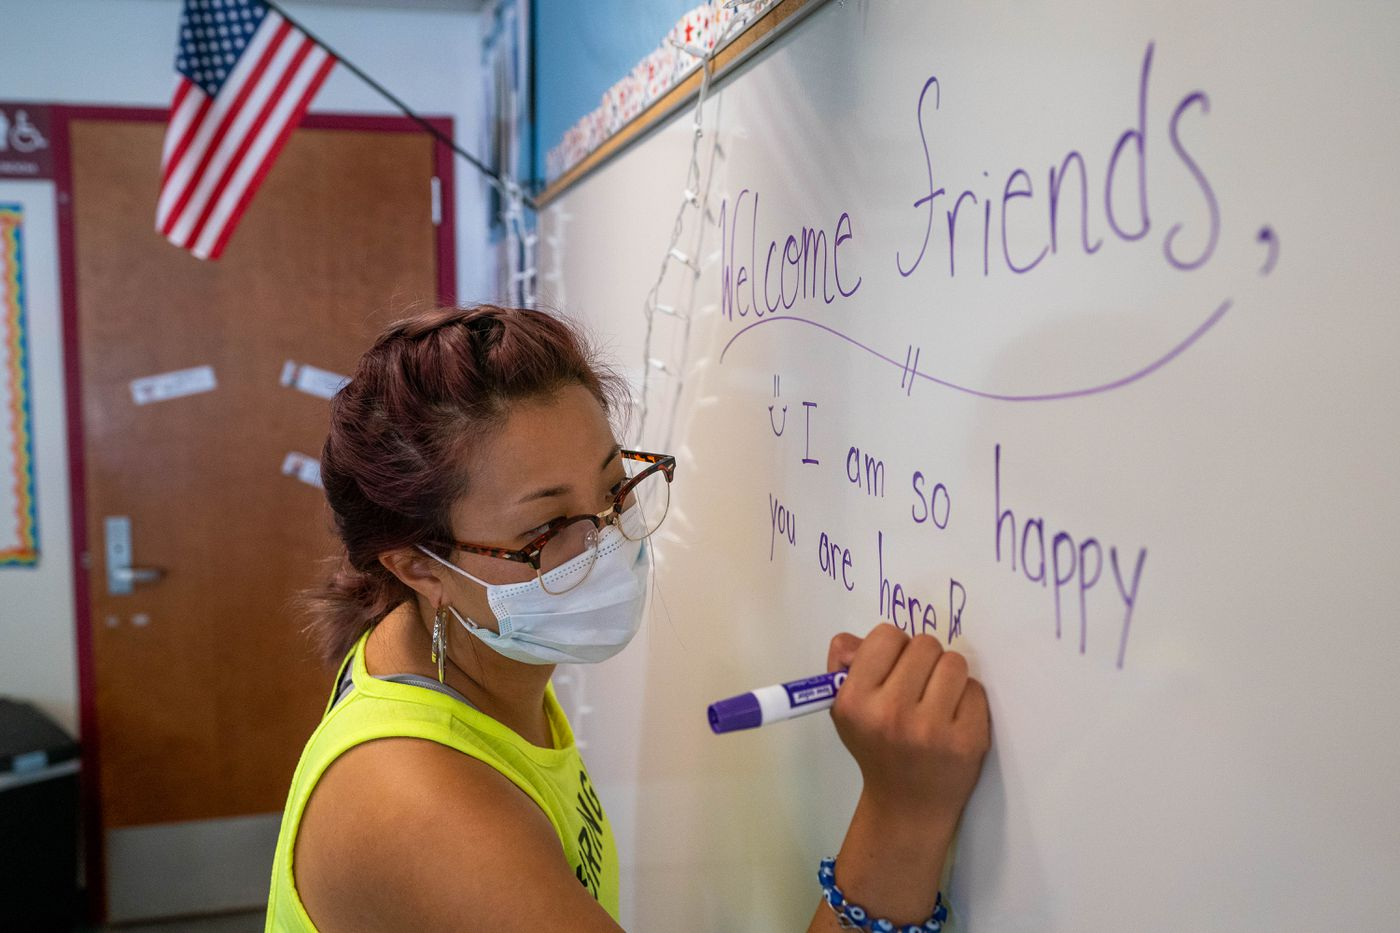 AUGUST 13. First-grade teacher Katrina Kim writes a welcome message on the whiteboard in her classroom at Nunaka Valley Elementary School. Kim said she is prepping for both remote and in-person teaching, because she wants to be ready if the school district changes plans. (Loren Holmes / ADN)